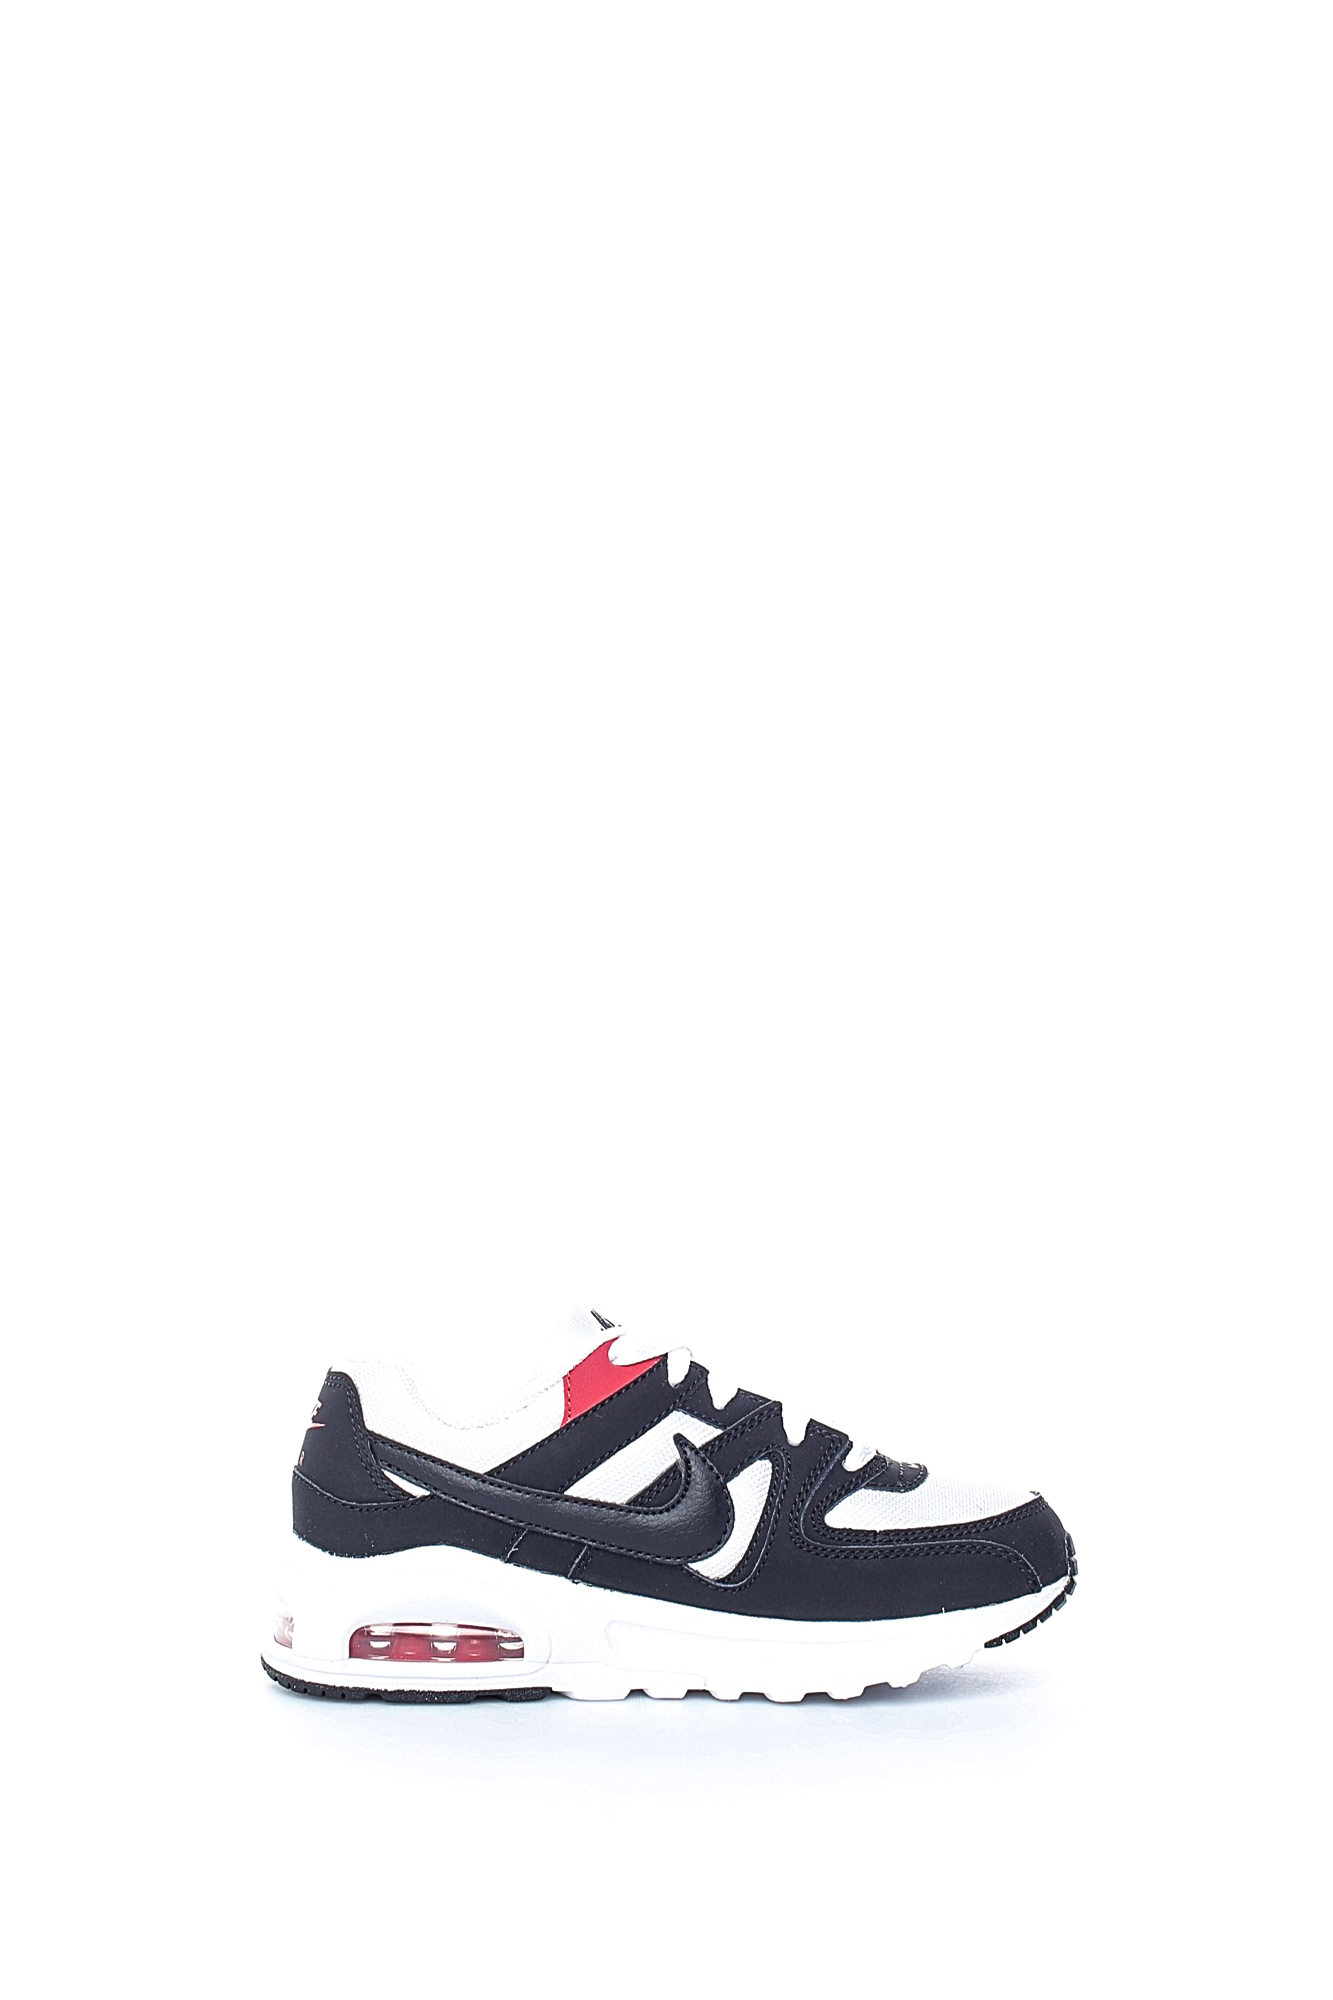 NIKE – Παιδικά αθλητικά παπούτσια Nike AIR MAX COMMAND FLEX (PS) μαύρα – άσπρα